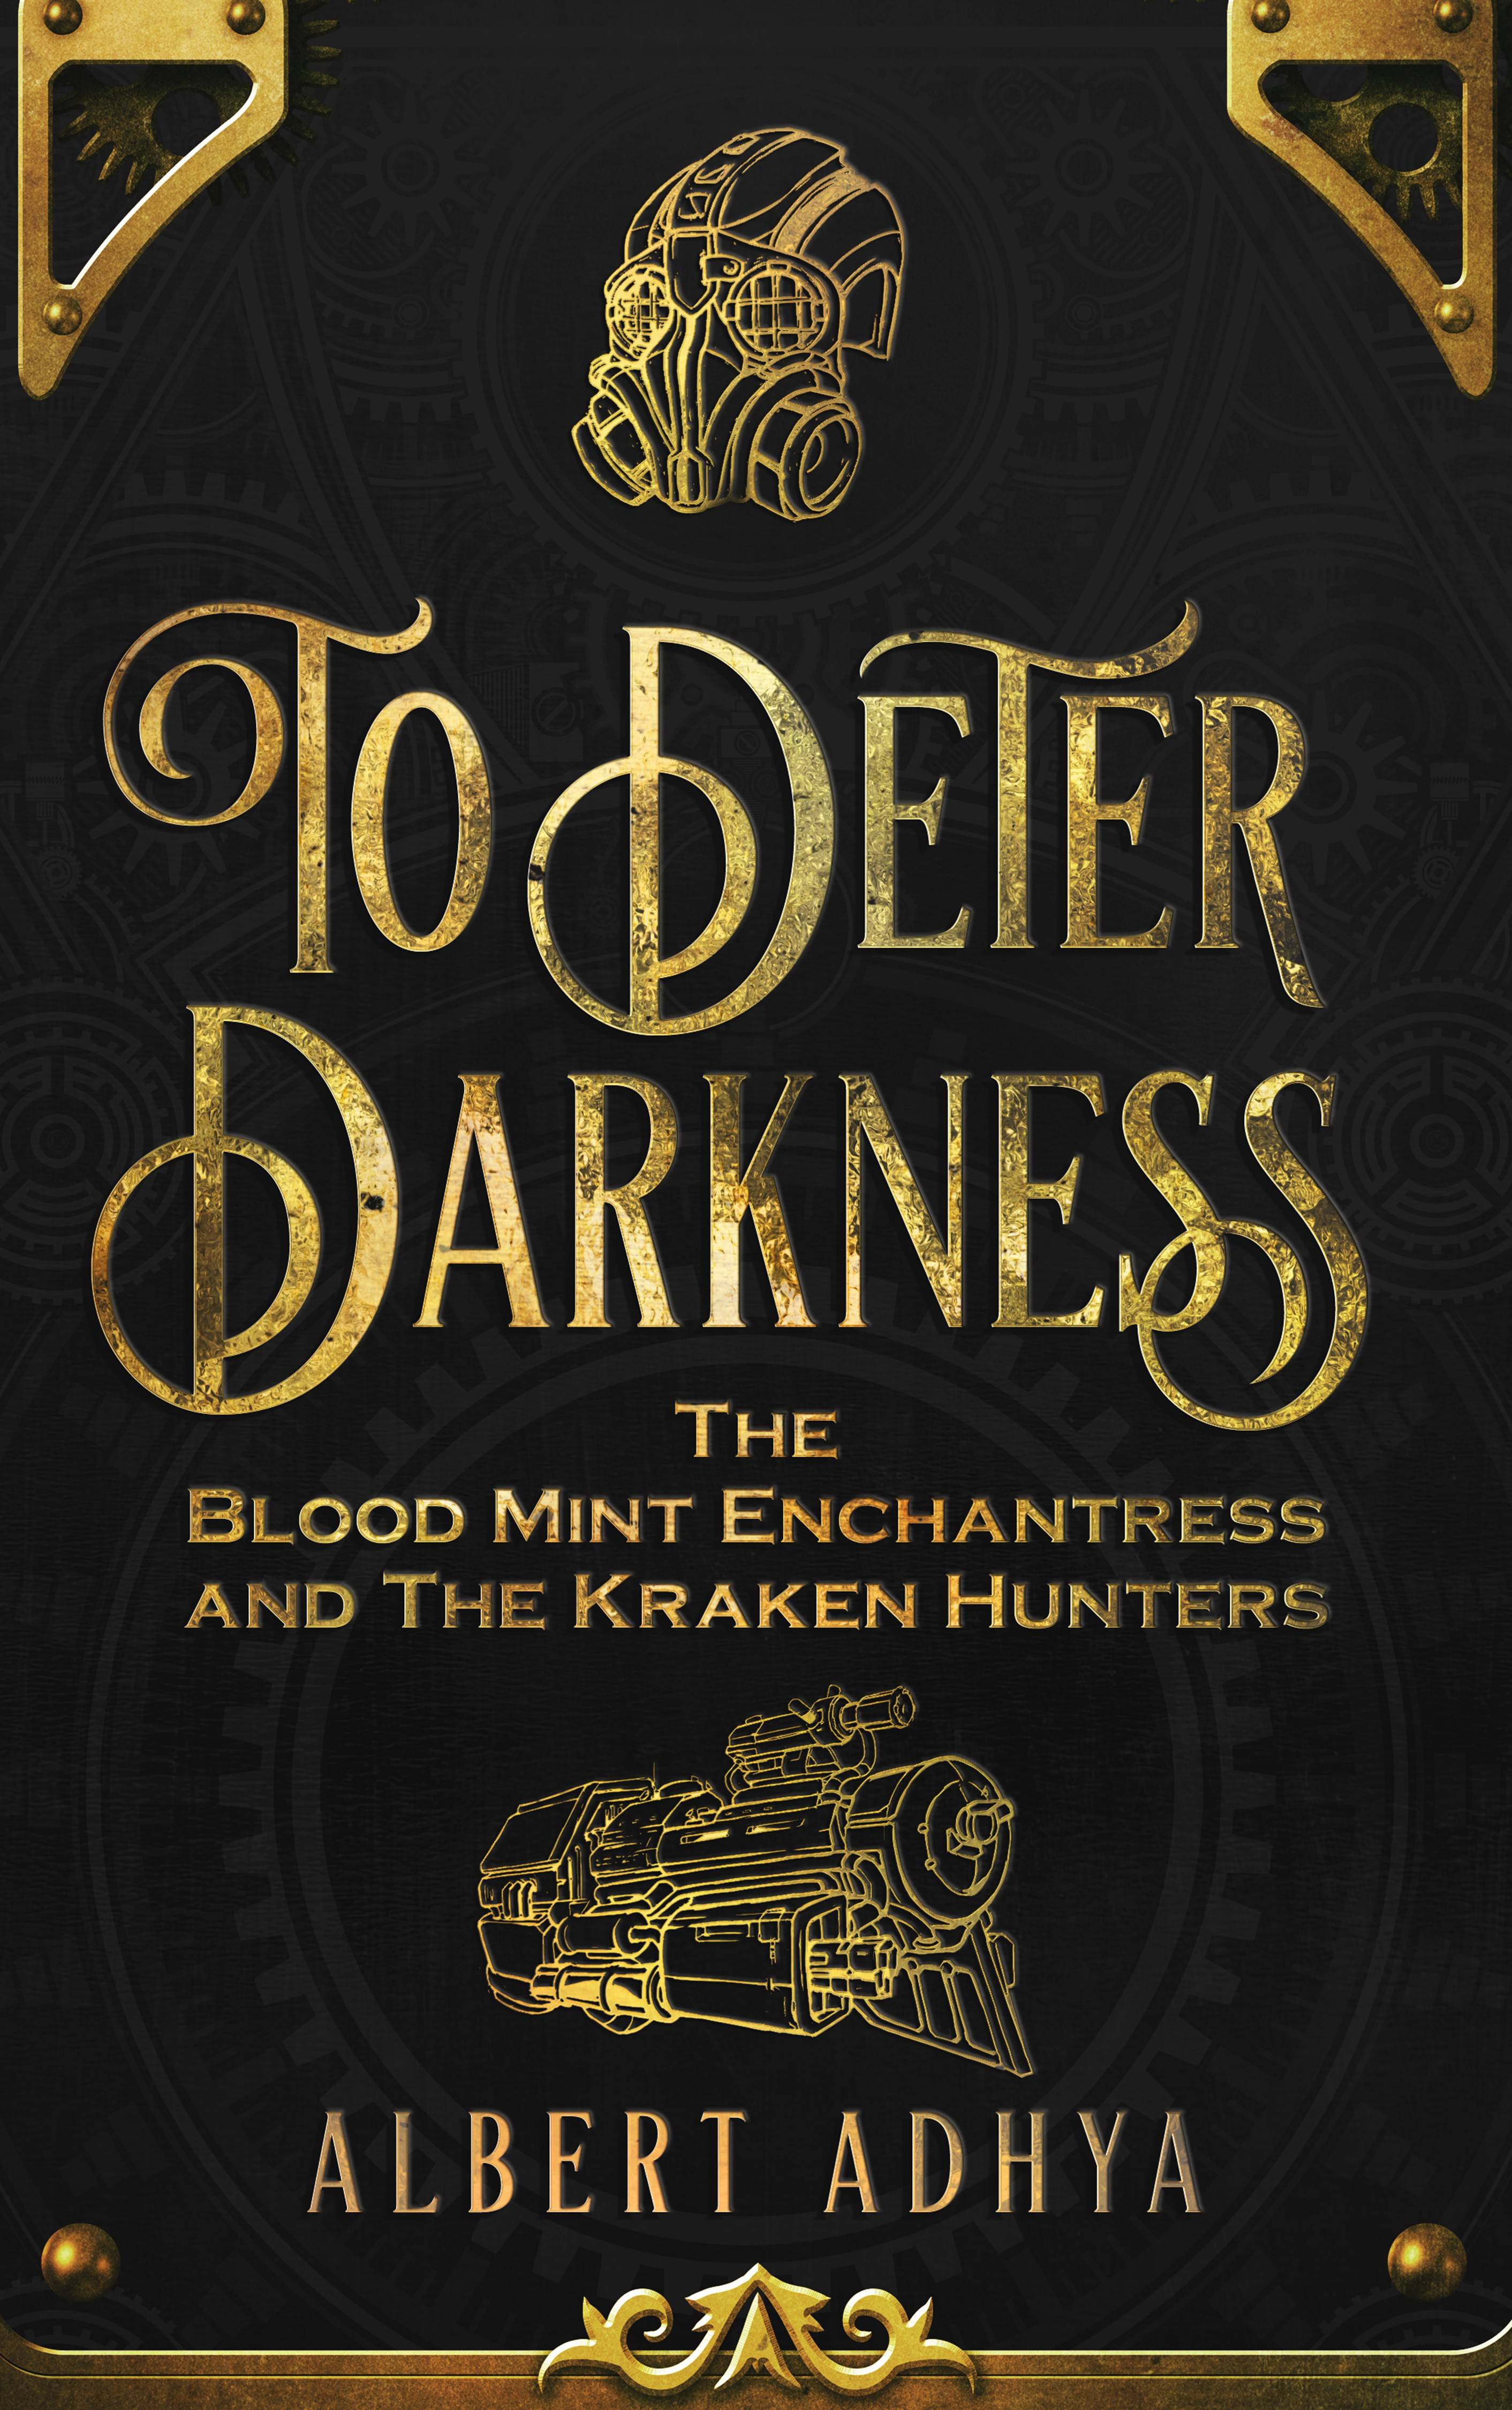 To Deter Darkness: The Blood Mint Enchantress and The Kraken Hunters